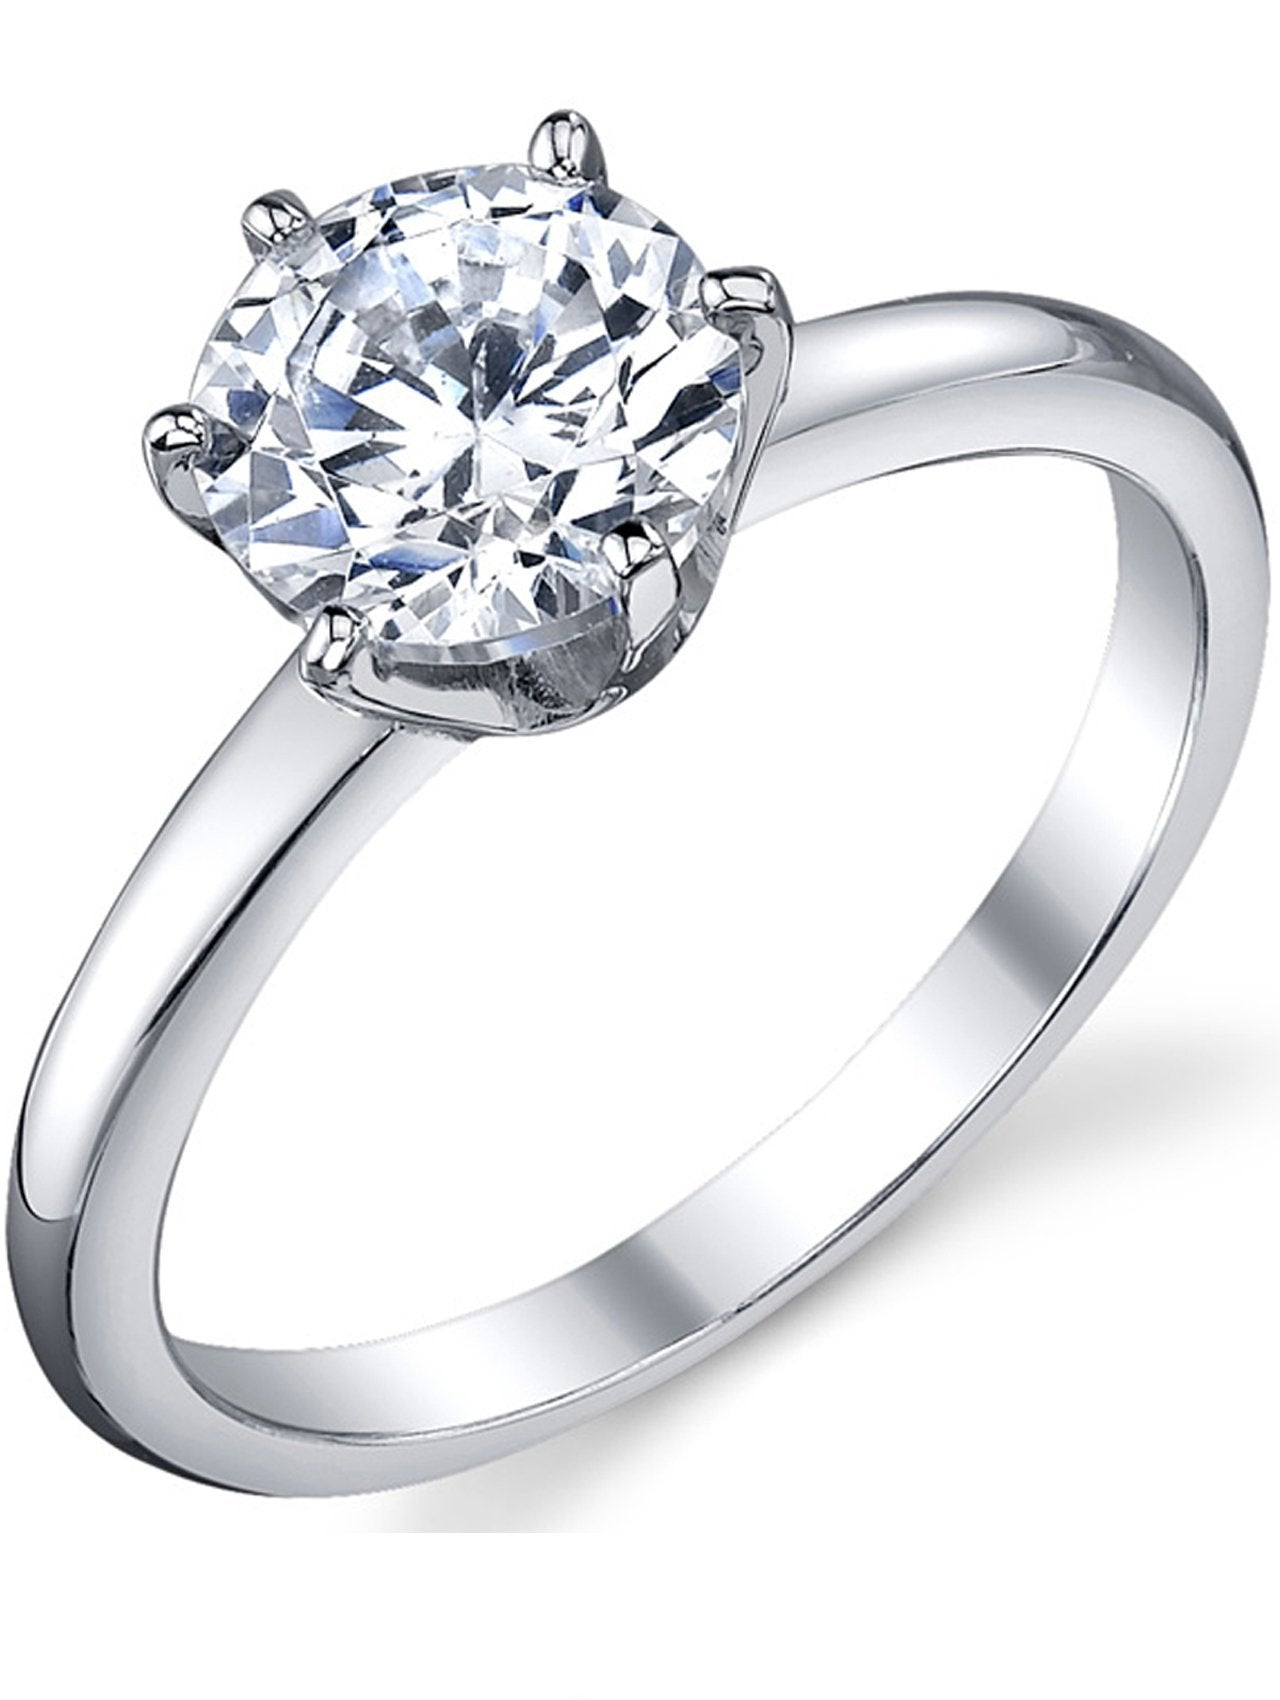 1.25 Ct Round Cut CZ 925 Sterling Silver Engagement Wedding Ring Women/'s Sz 5-10